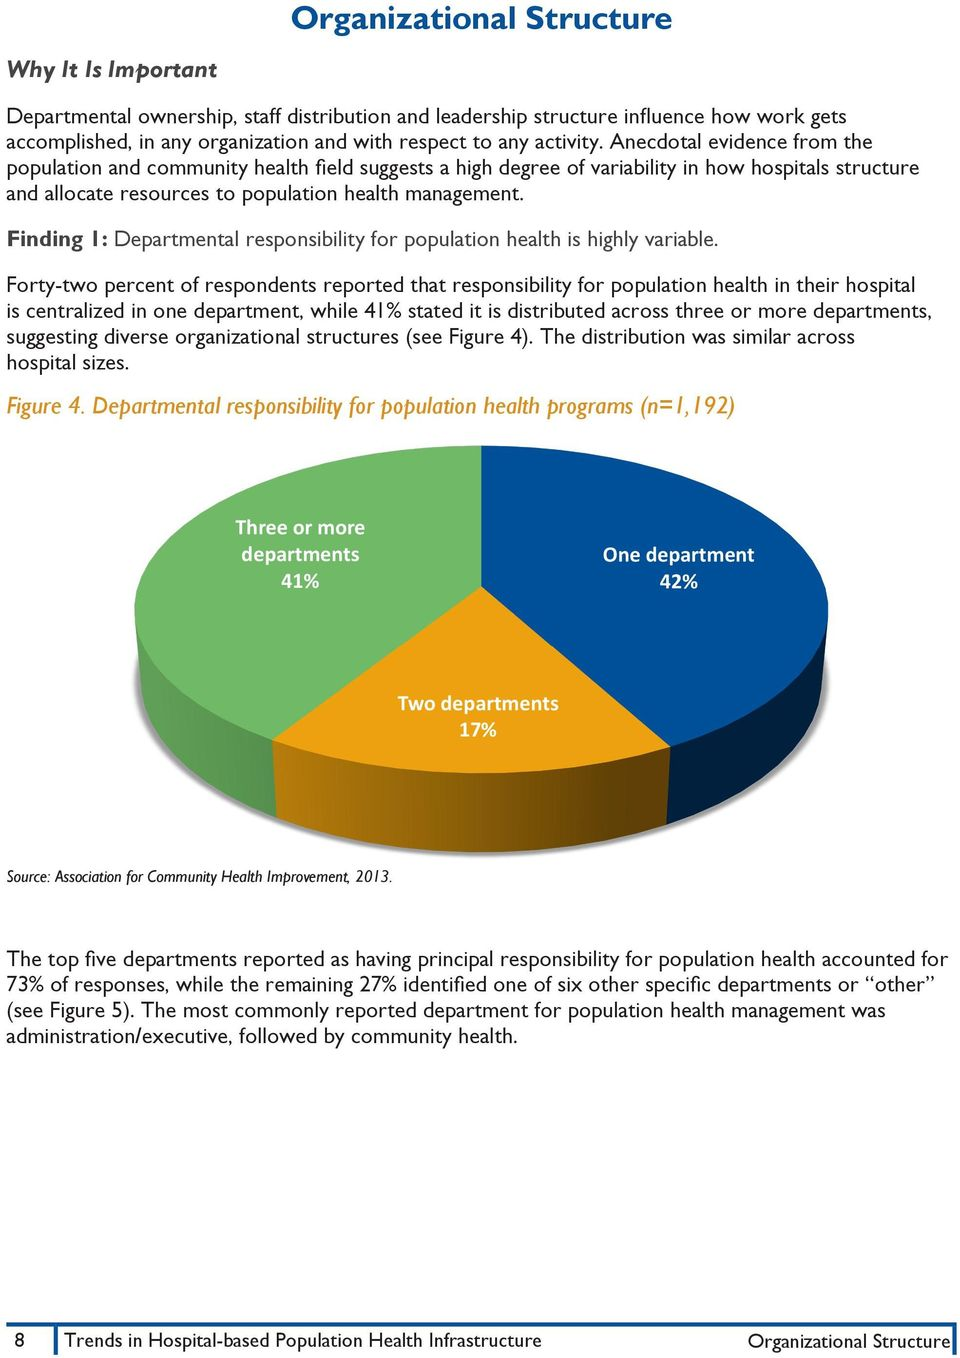 Finding 1: Departmental responsibility for population health is highly variable.